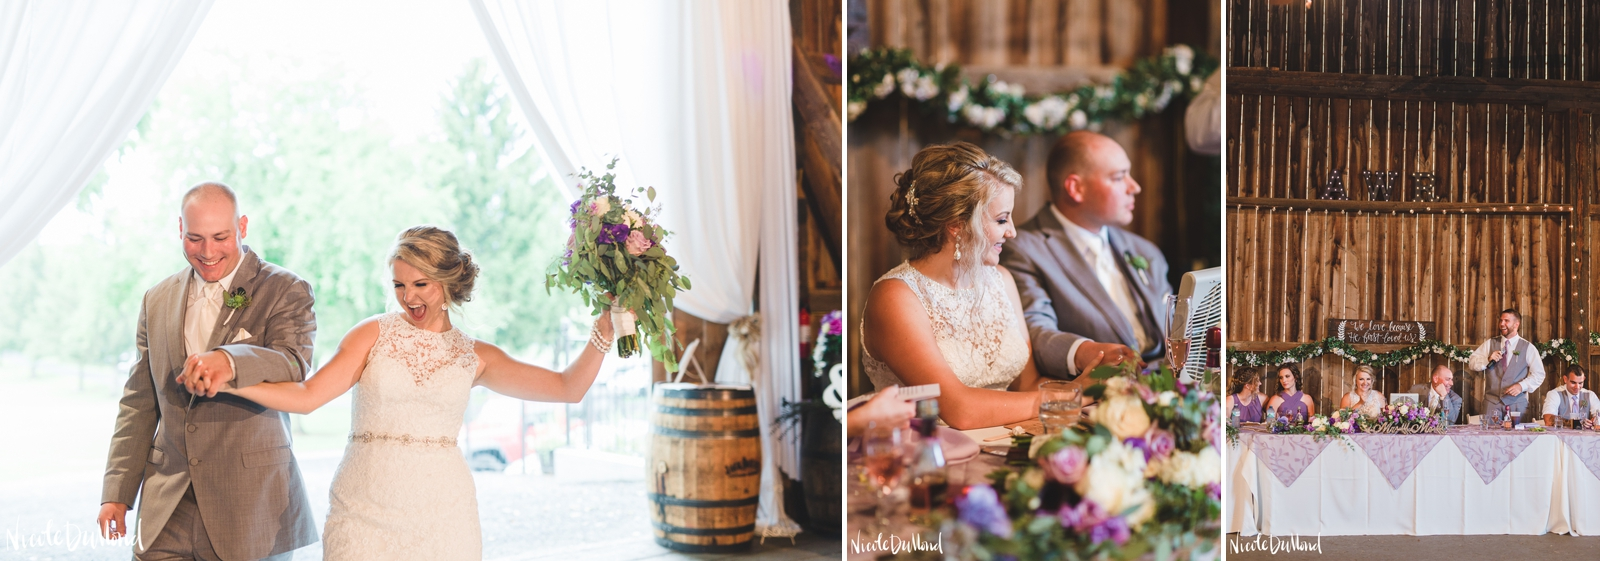 Colonial Pines Lewisburg Wedding 61